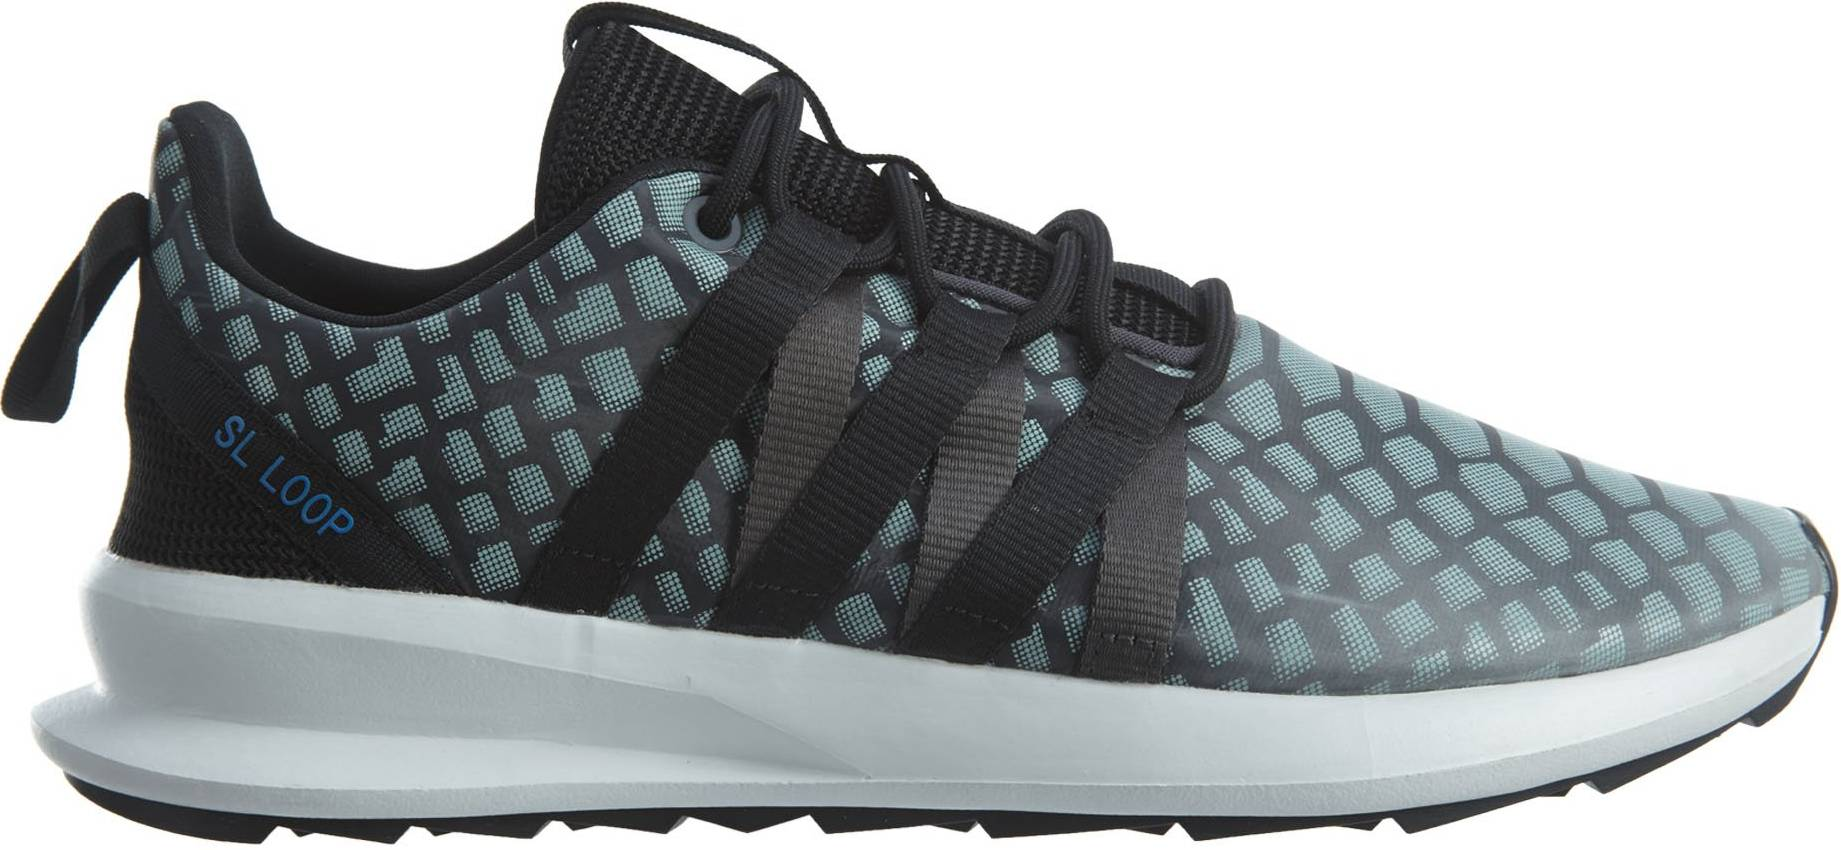 Only $45 + Review of Adidas SL Loop CT